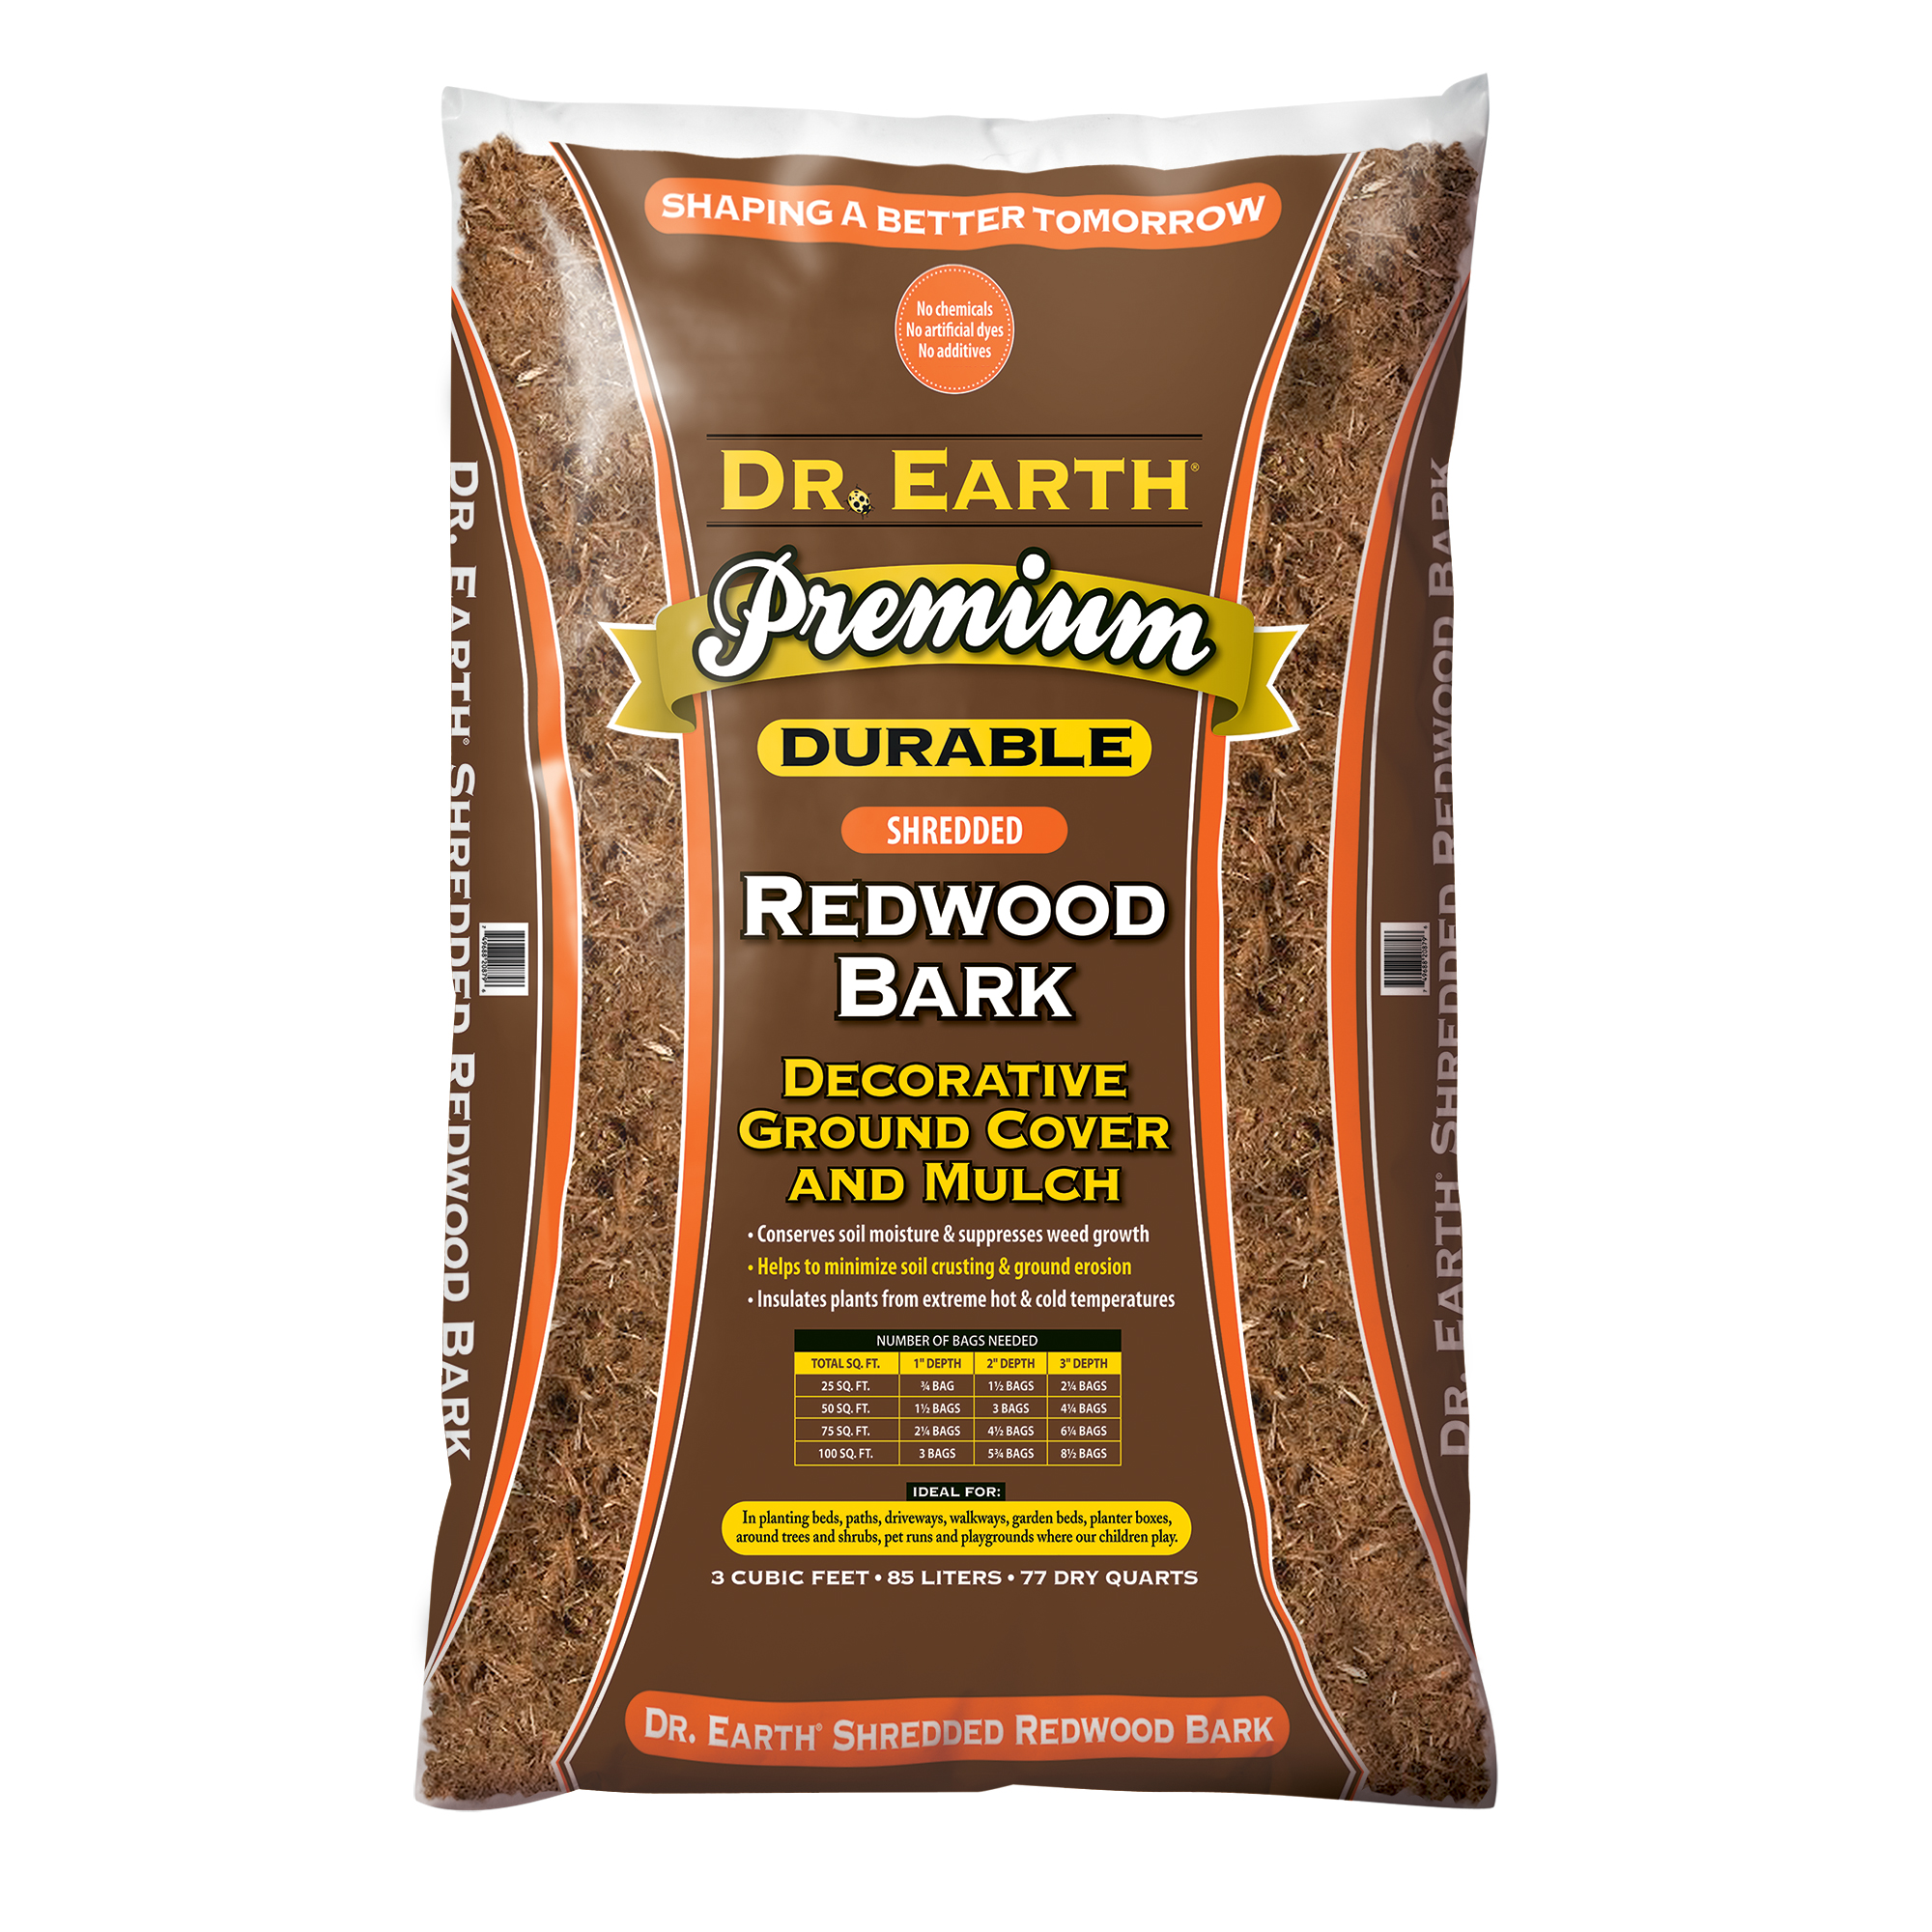 DR. EARTH PREMIUM SHREDDED REDWOOD BARK  DECORATIVE GROUND COVER AND MULCH